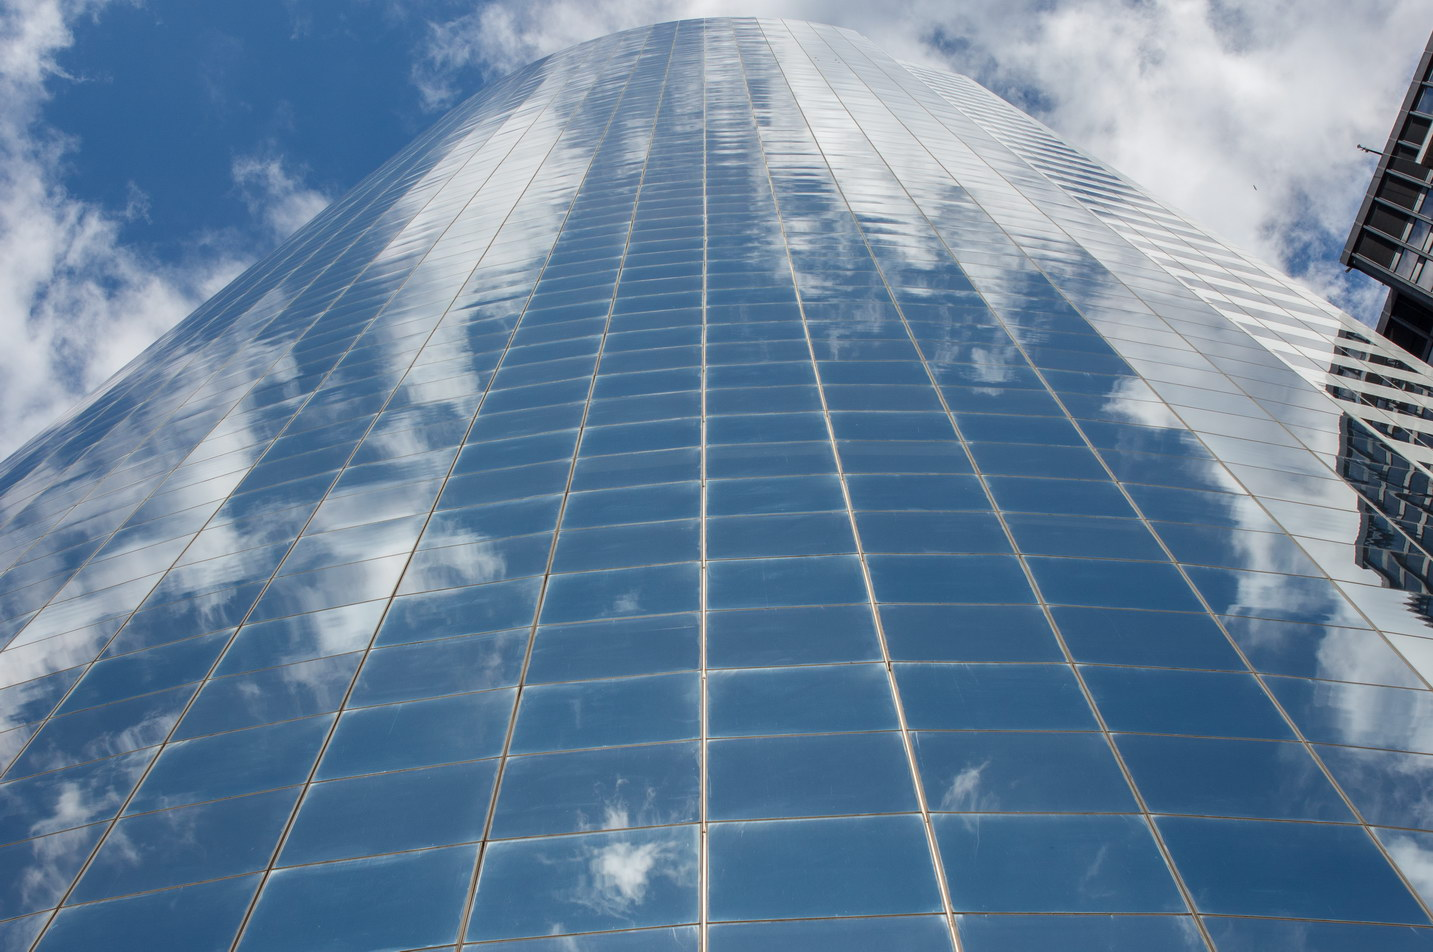 The curved glass facade reflects the sky.